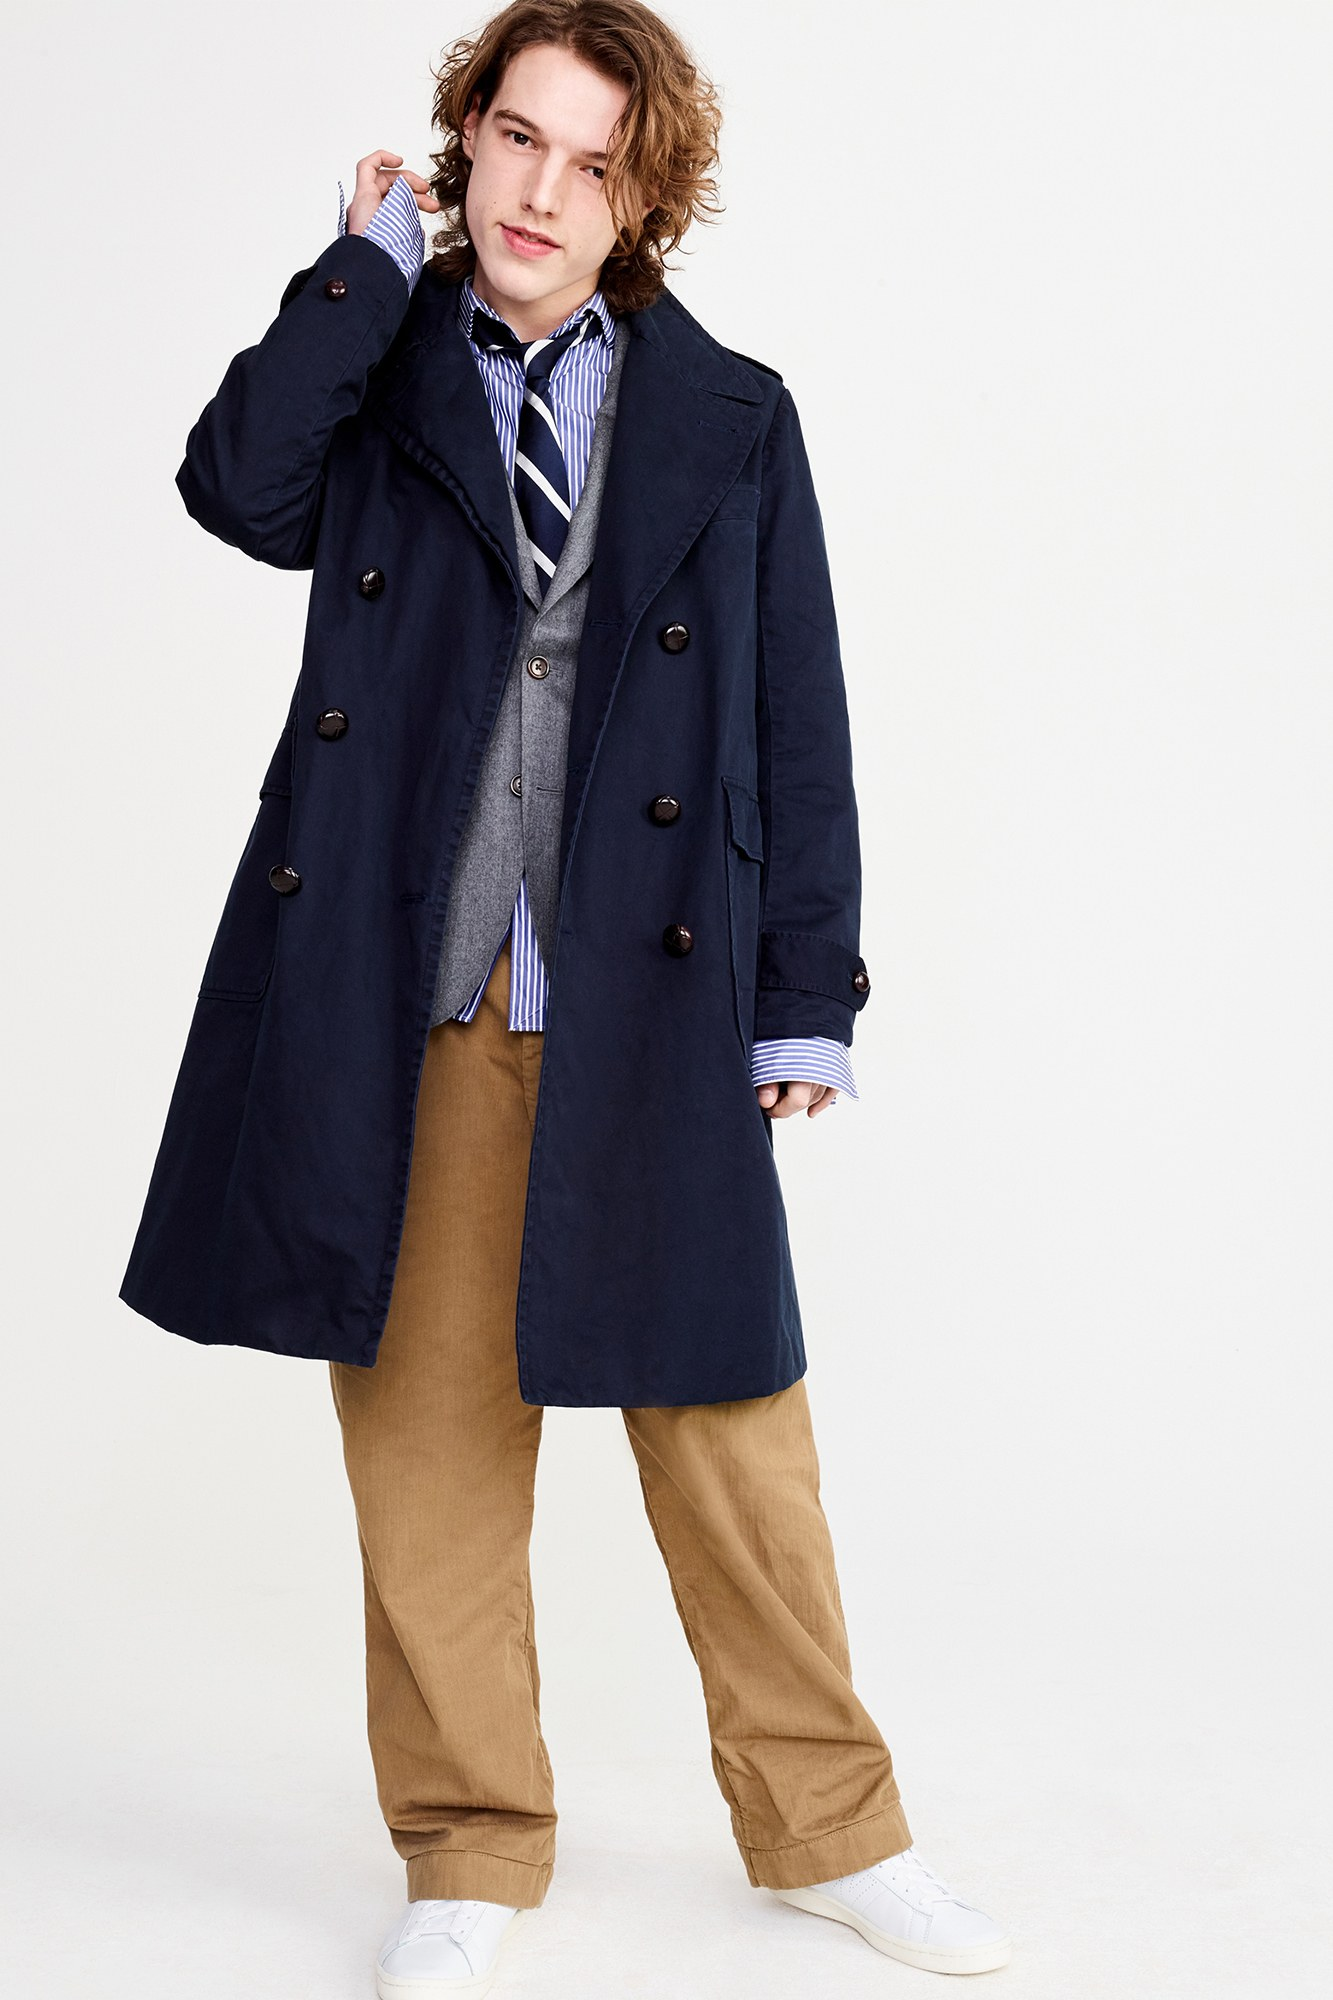 [Hình: 07-j-crew-fall-2017-ready-to-wear-men.jpg]